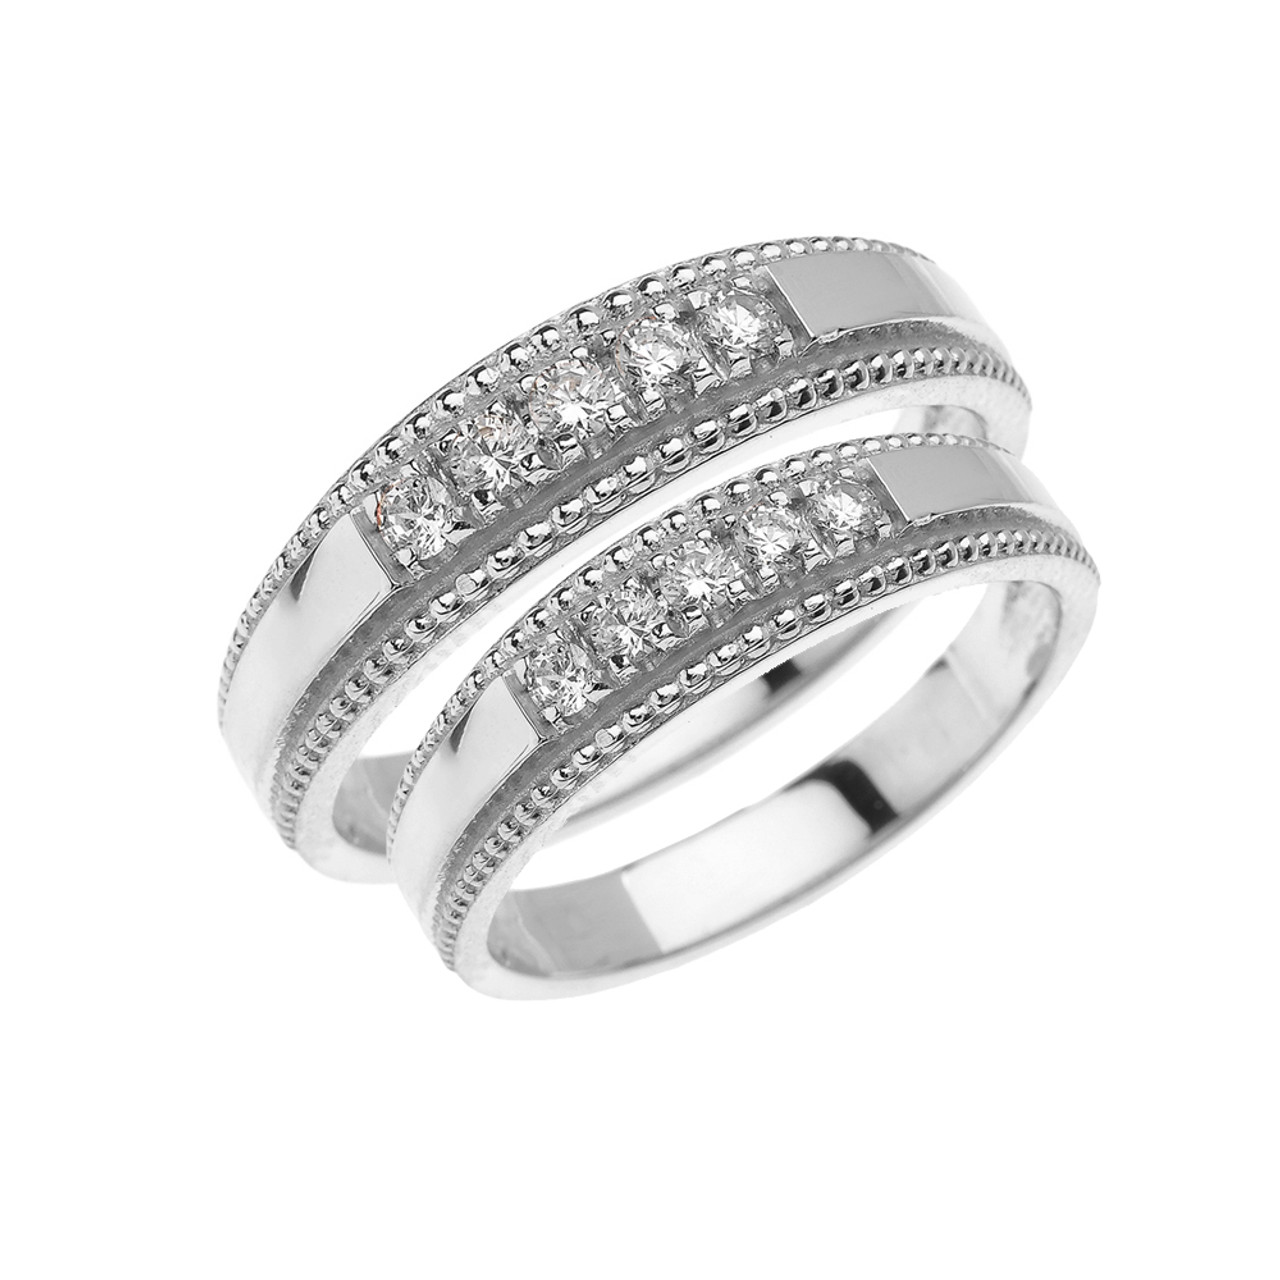 His And Hers Matching Wedding Bands Cheap.White Gold Elegant His And Hers Diamond Matching Wedding Bands